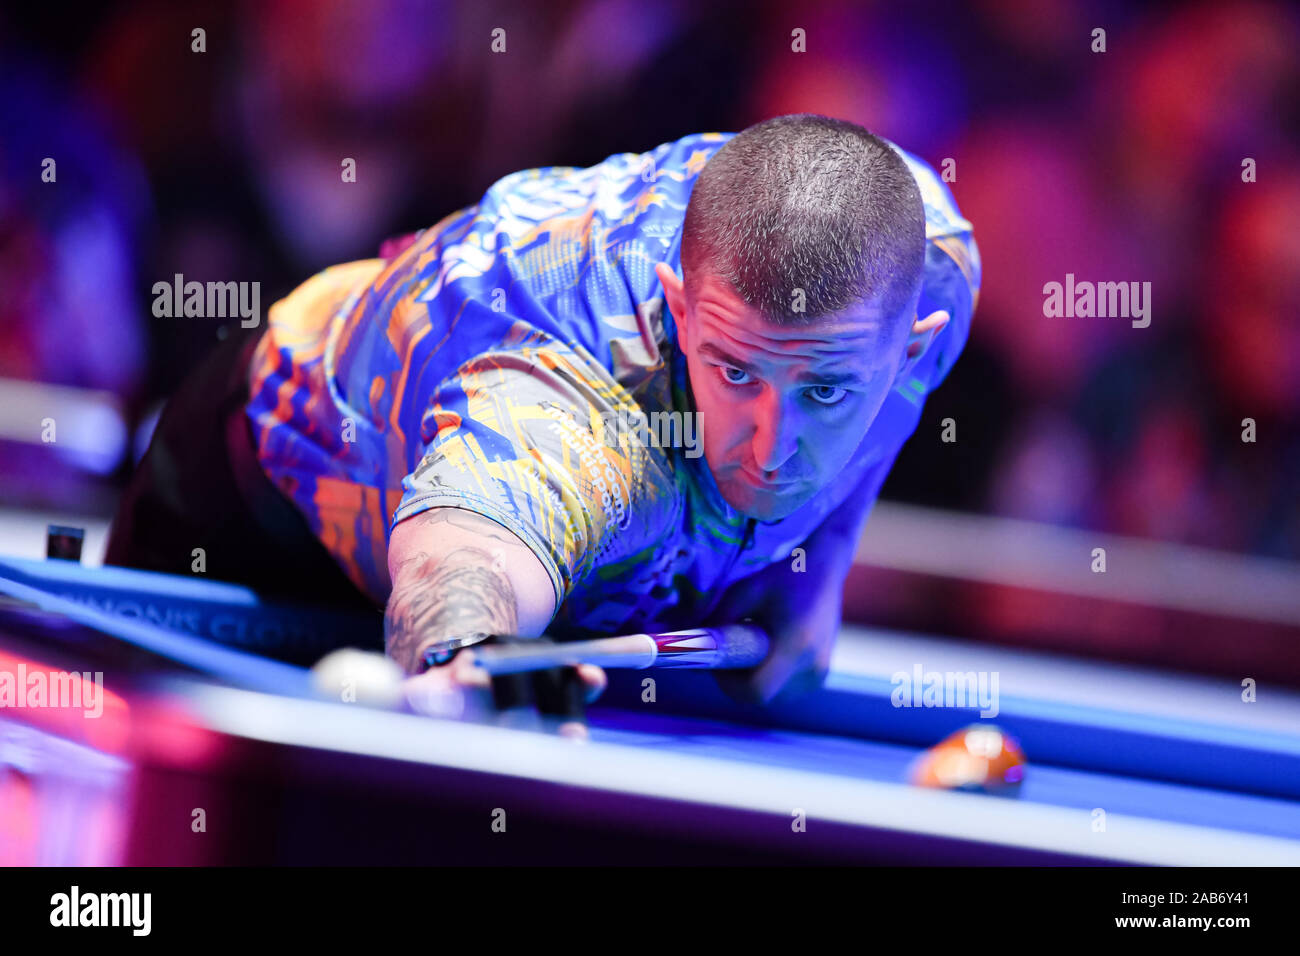 LAS VEGAS, USA. 26th Nov, 2019. Jayson Show during Day 1 Session of MOSCONI CUP XXVI at Mandalay Bay on Tuesday, November 26, 2019 in LAS VEGAS, USA. Credit: Taka G Wu/Alamy Live News Stock Photo